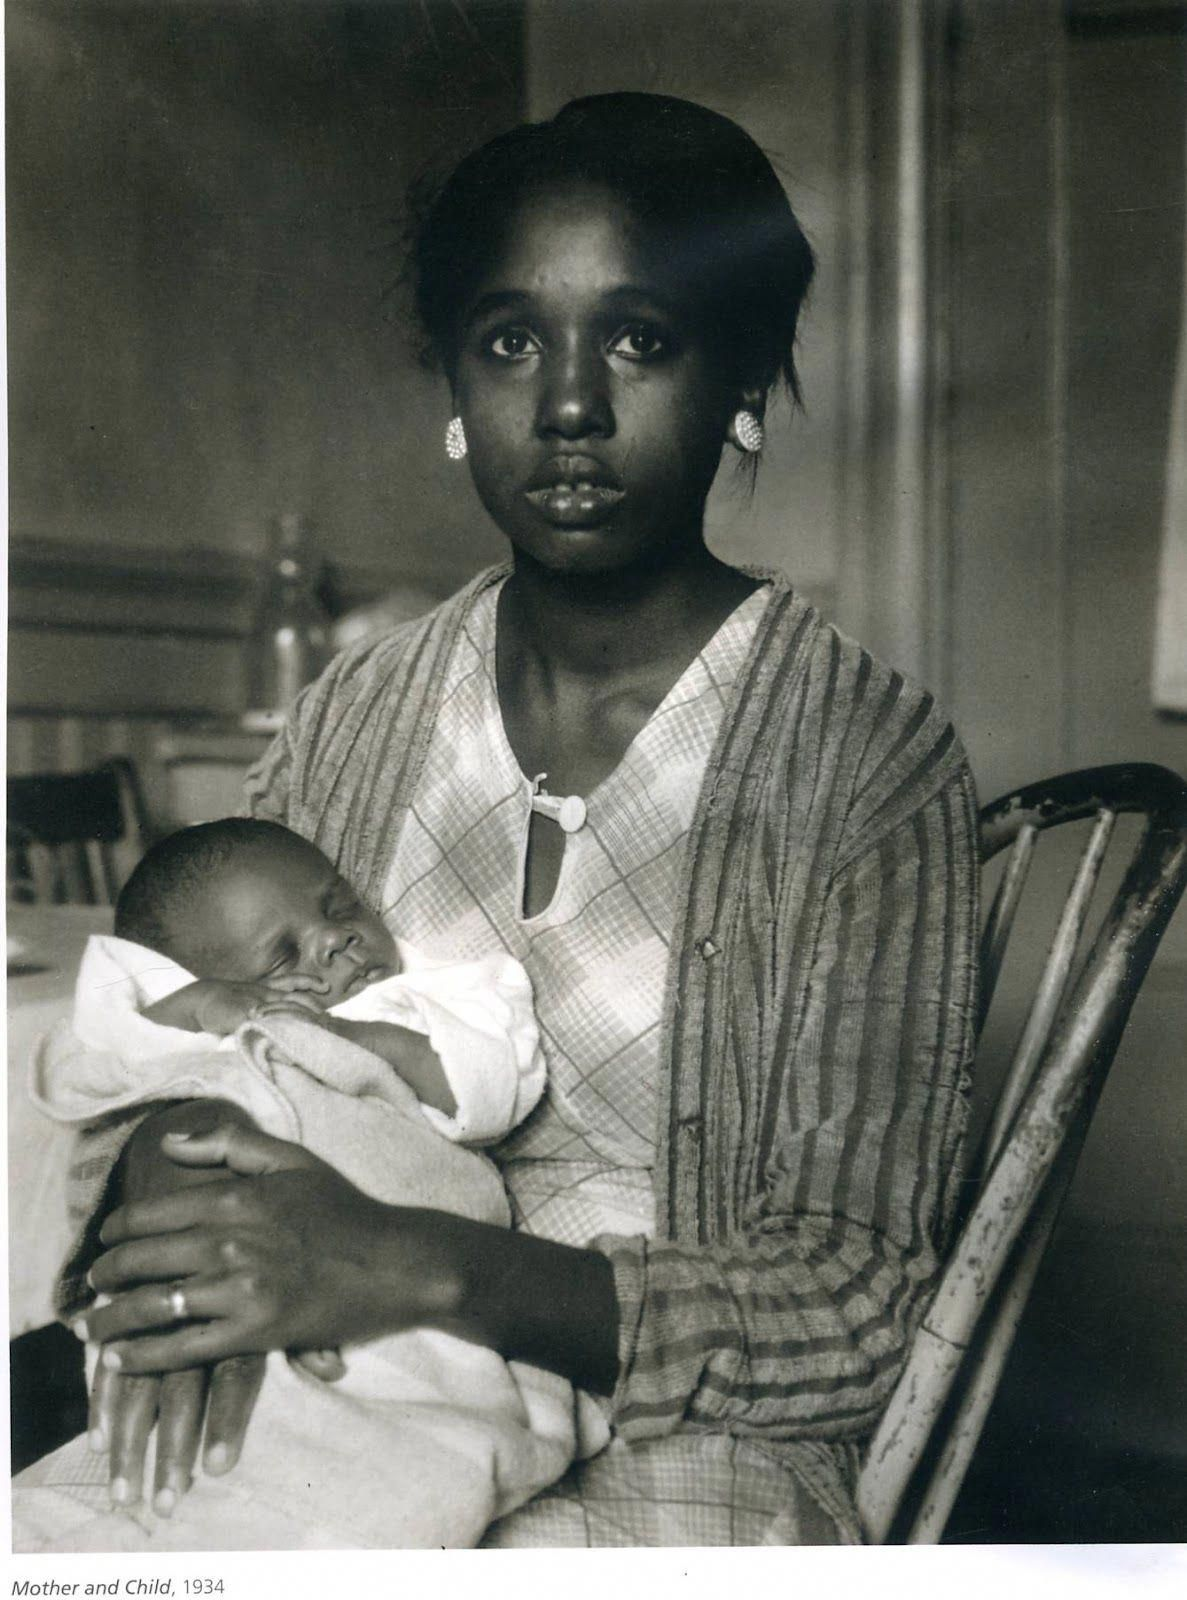 Life In Photographs By Dorothea Lange From The 1920s To The 1950s Vintagephotograhs Dorothea Lange Photography African American Mothers Dorothea Lange